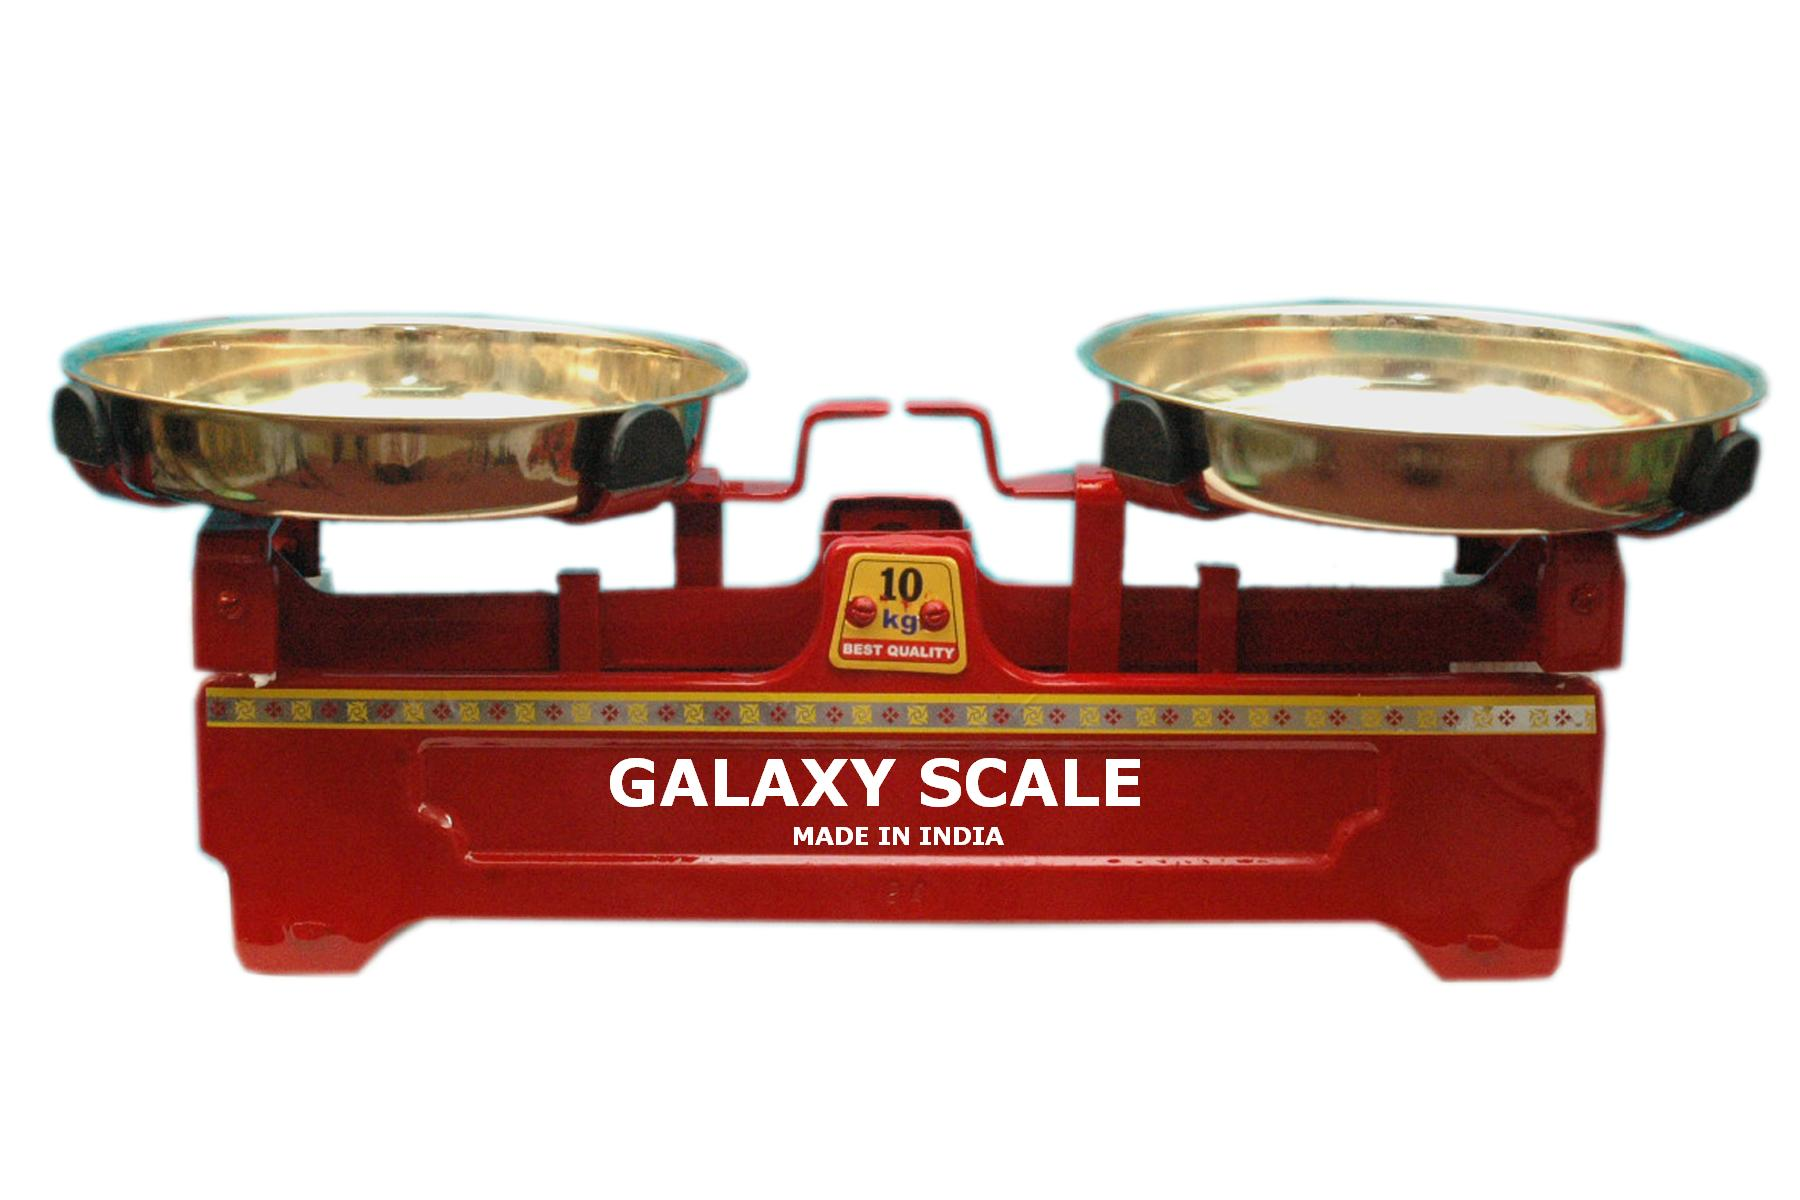 Galaxy scale co kitchen appliances manufacturer in india - Kitchen appliance manufacturers ...